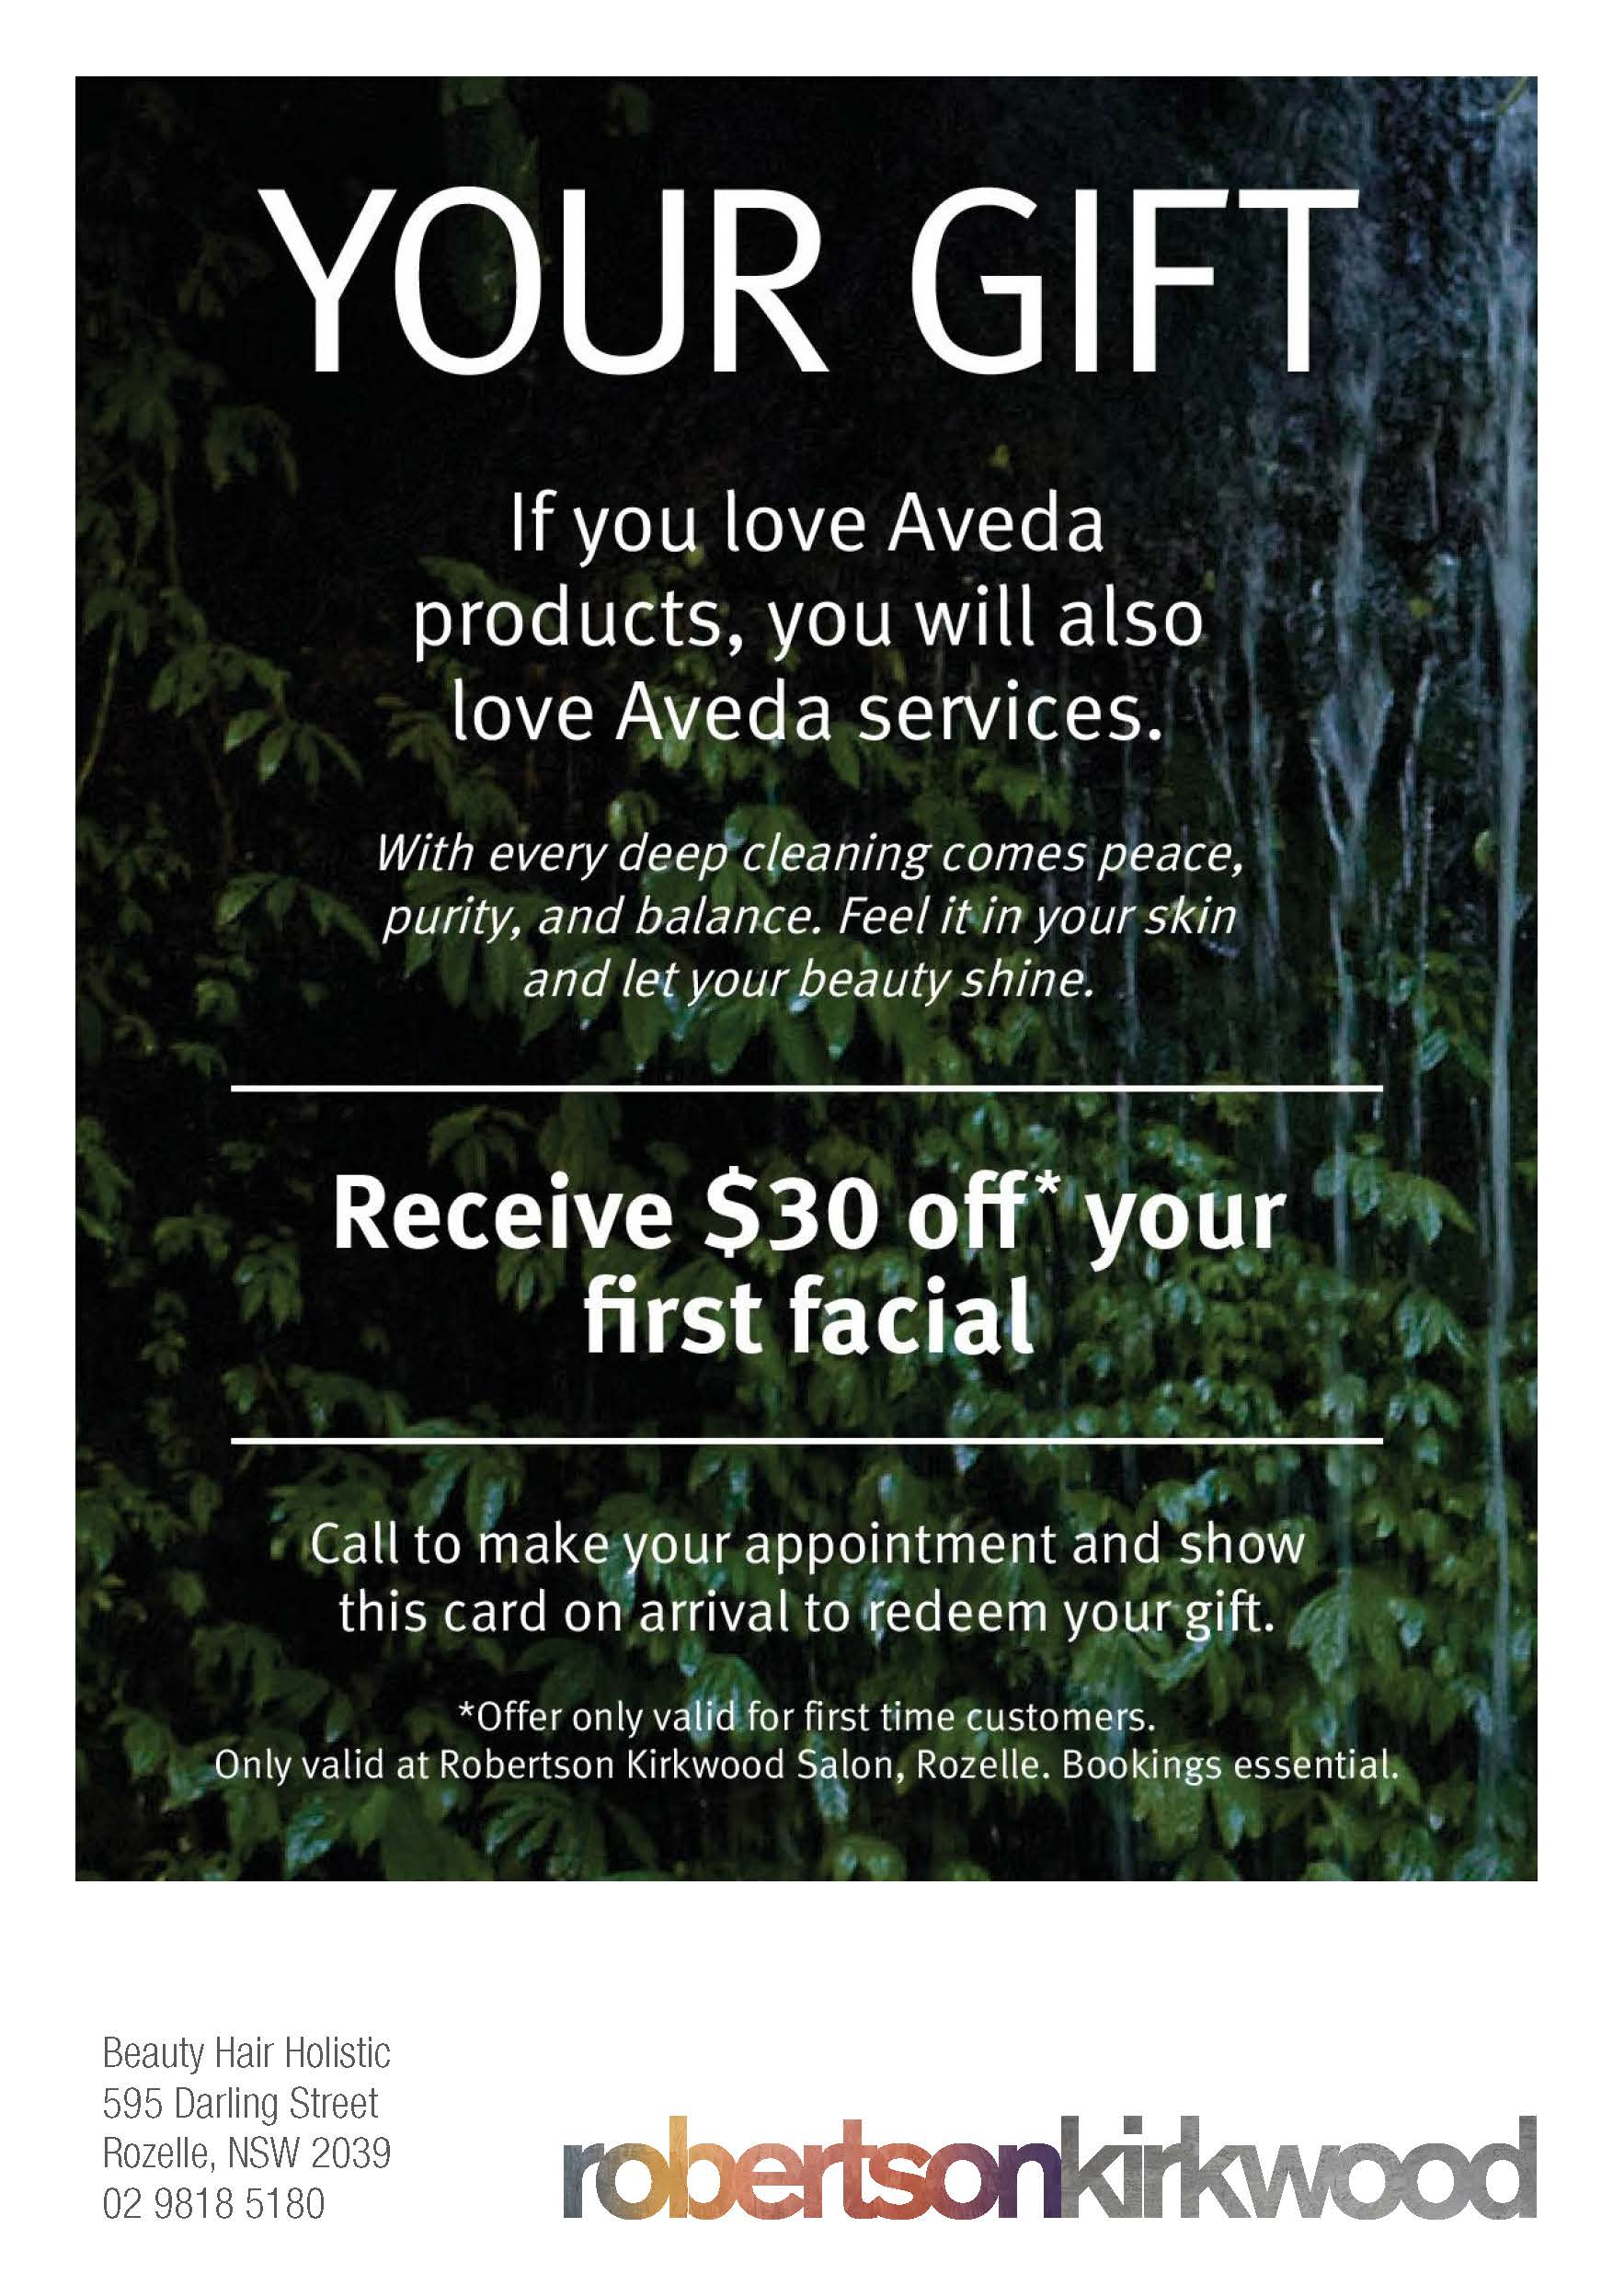 $30 Facial Welcome Offer Voucher